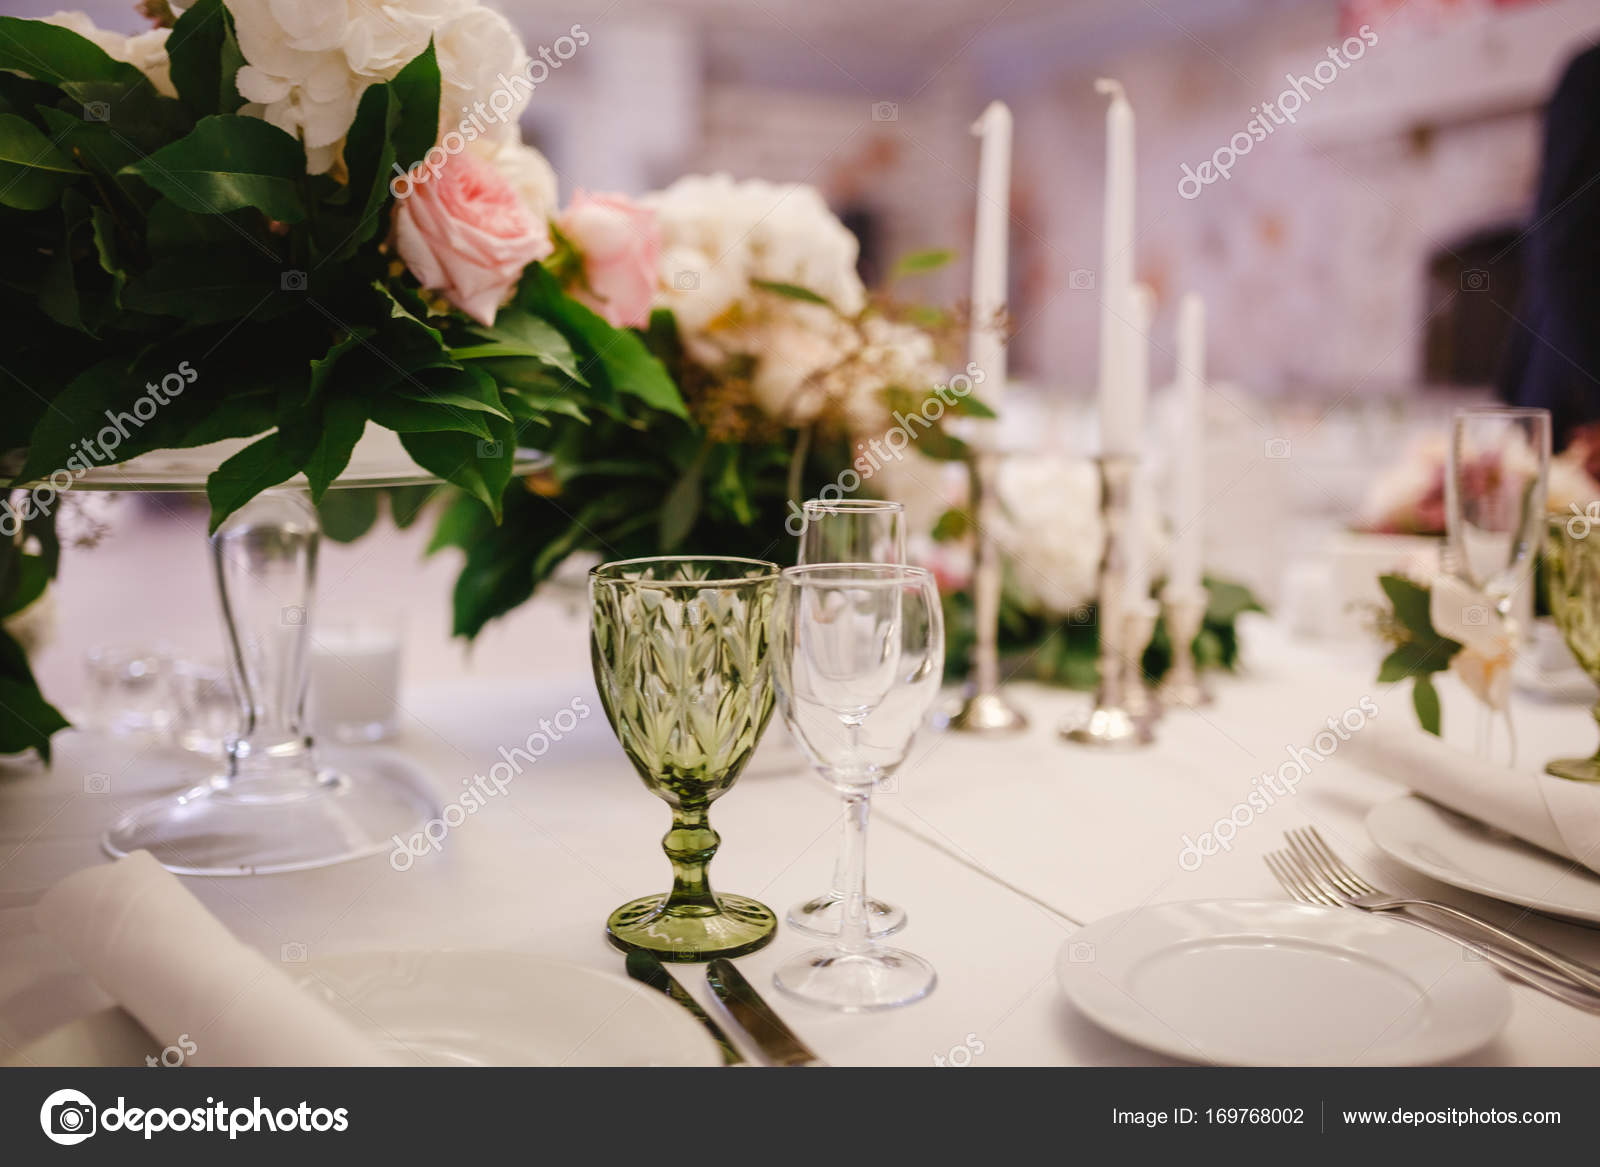 Table Decor With White Flowers And Candles For A Wedding Party